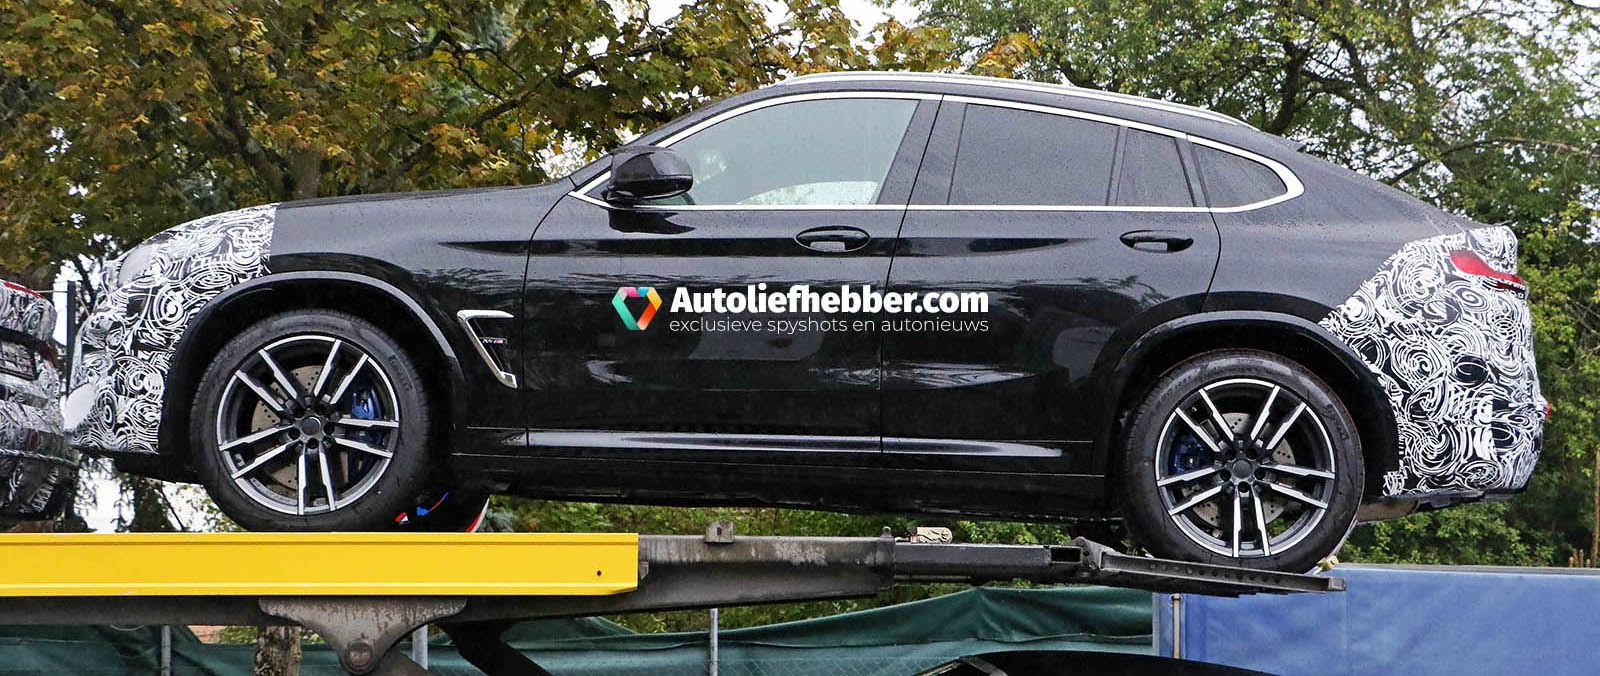 BMW X4 M facelift op autotransporter